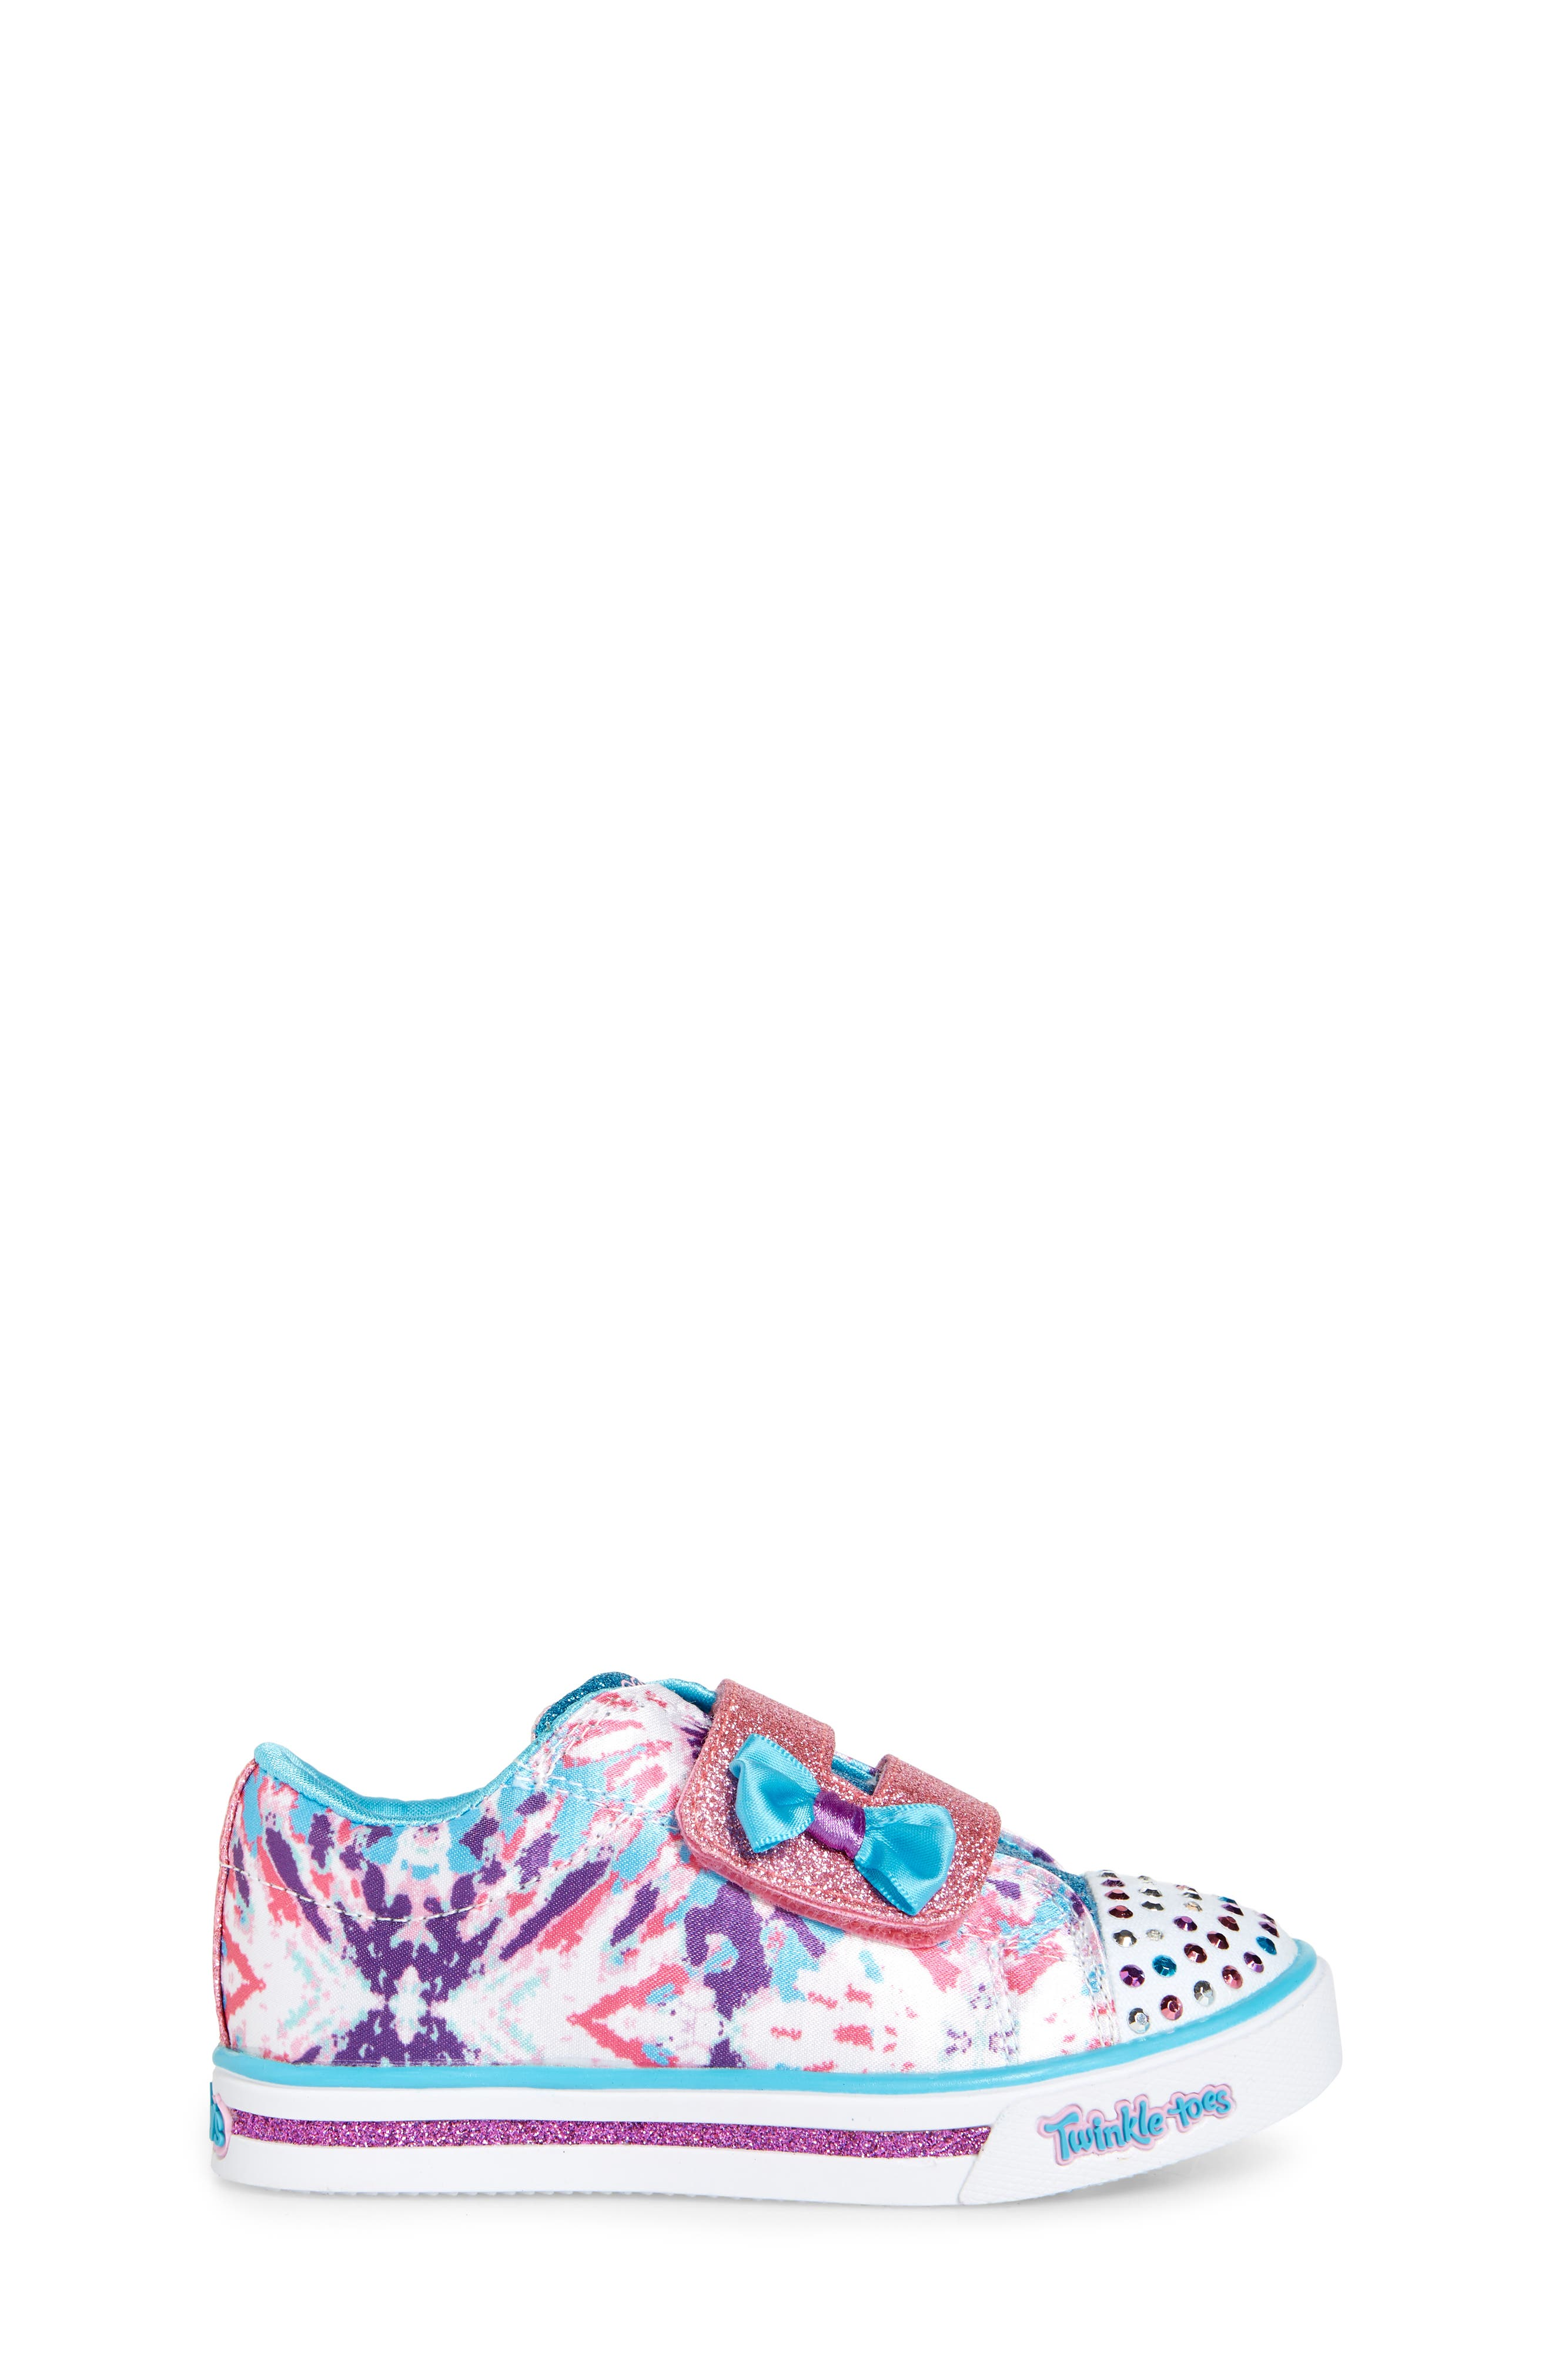 SKECHERS,                             Sparkle Glitz Lil Dazzle Sneaker,                             Alternate thumbnail 3, color,                             199